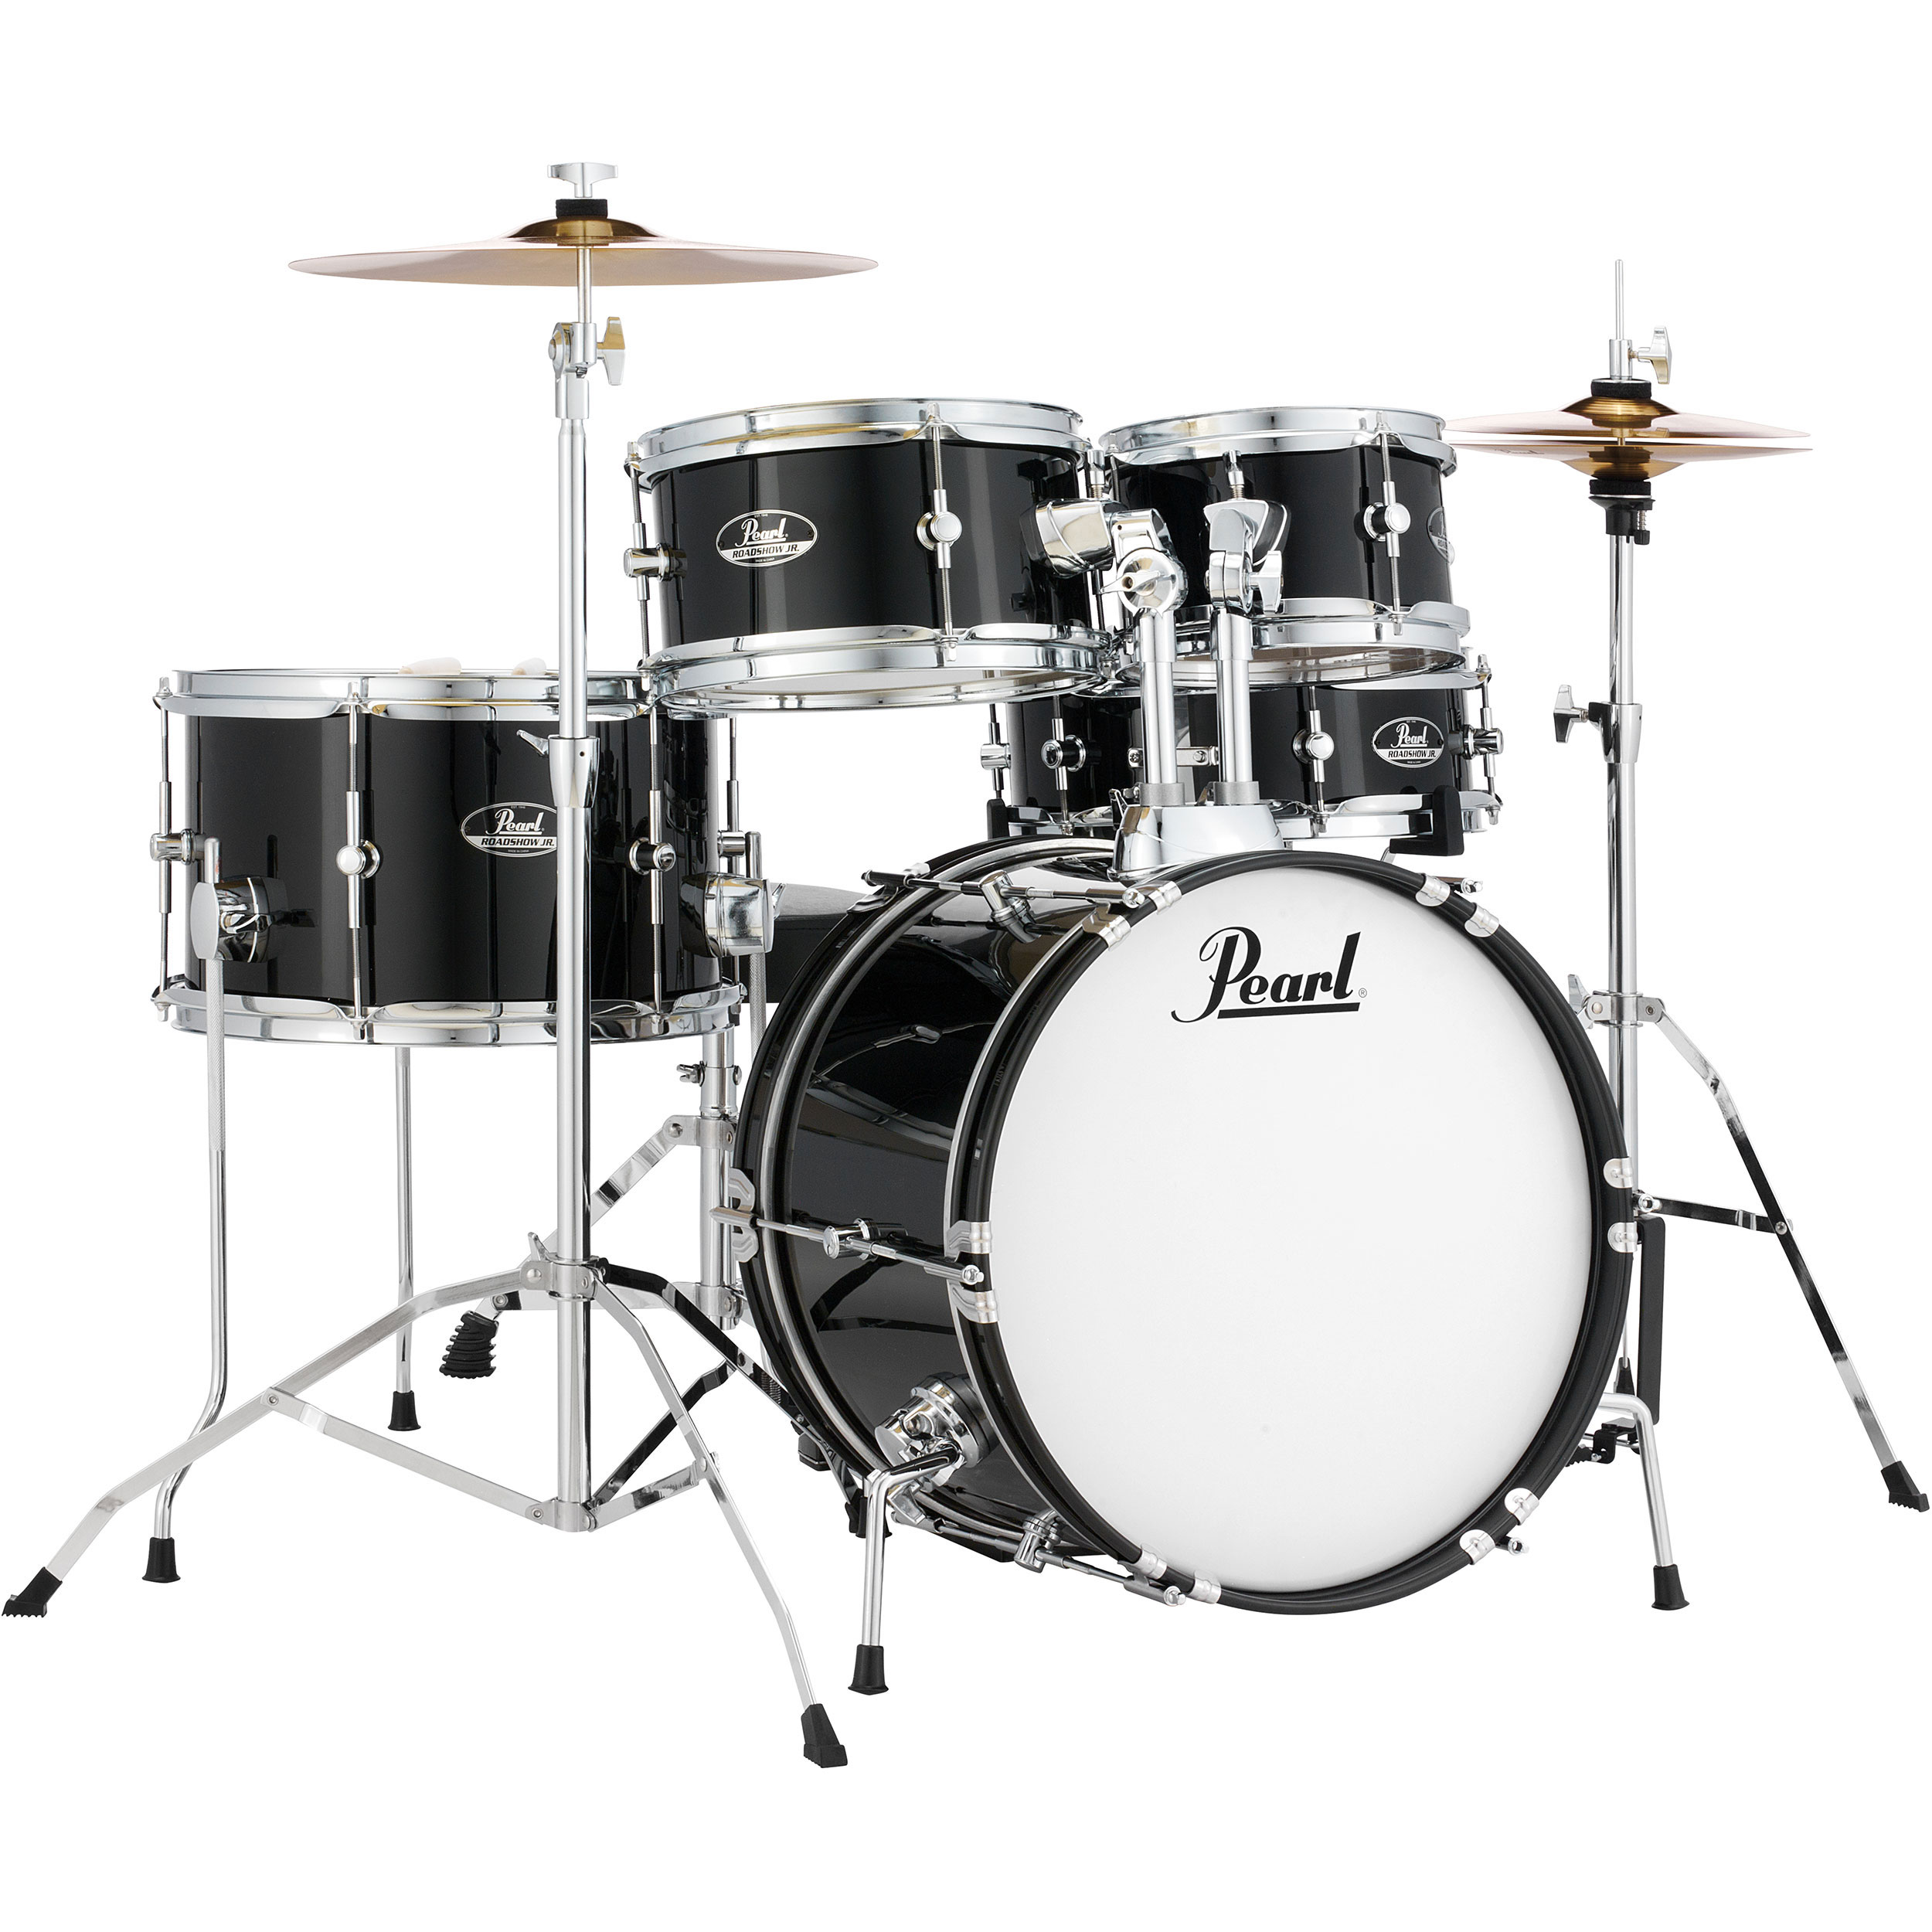 "Pearl Roadshow Jr. 5-Piece Drum Set with Hardware and Cymbals (16"" Bass, 8/10/13"" Toms, 12"" Snare)"